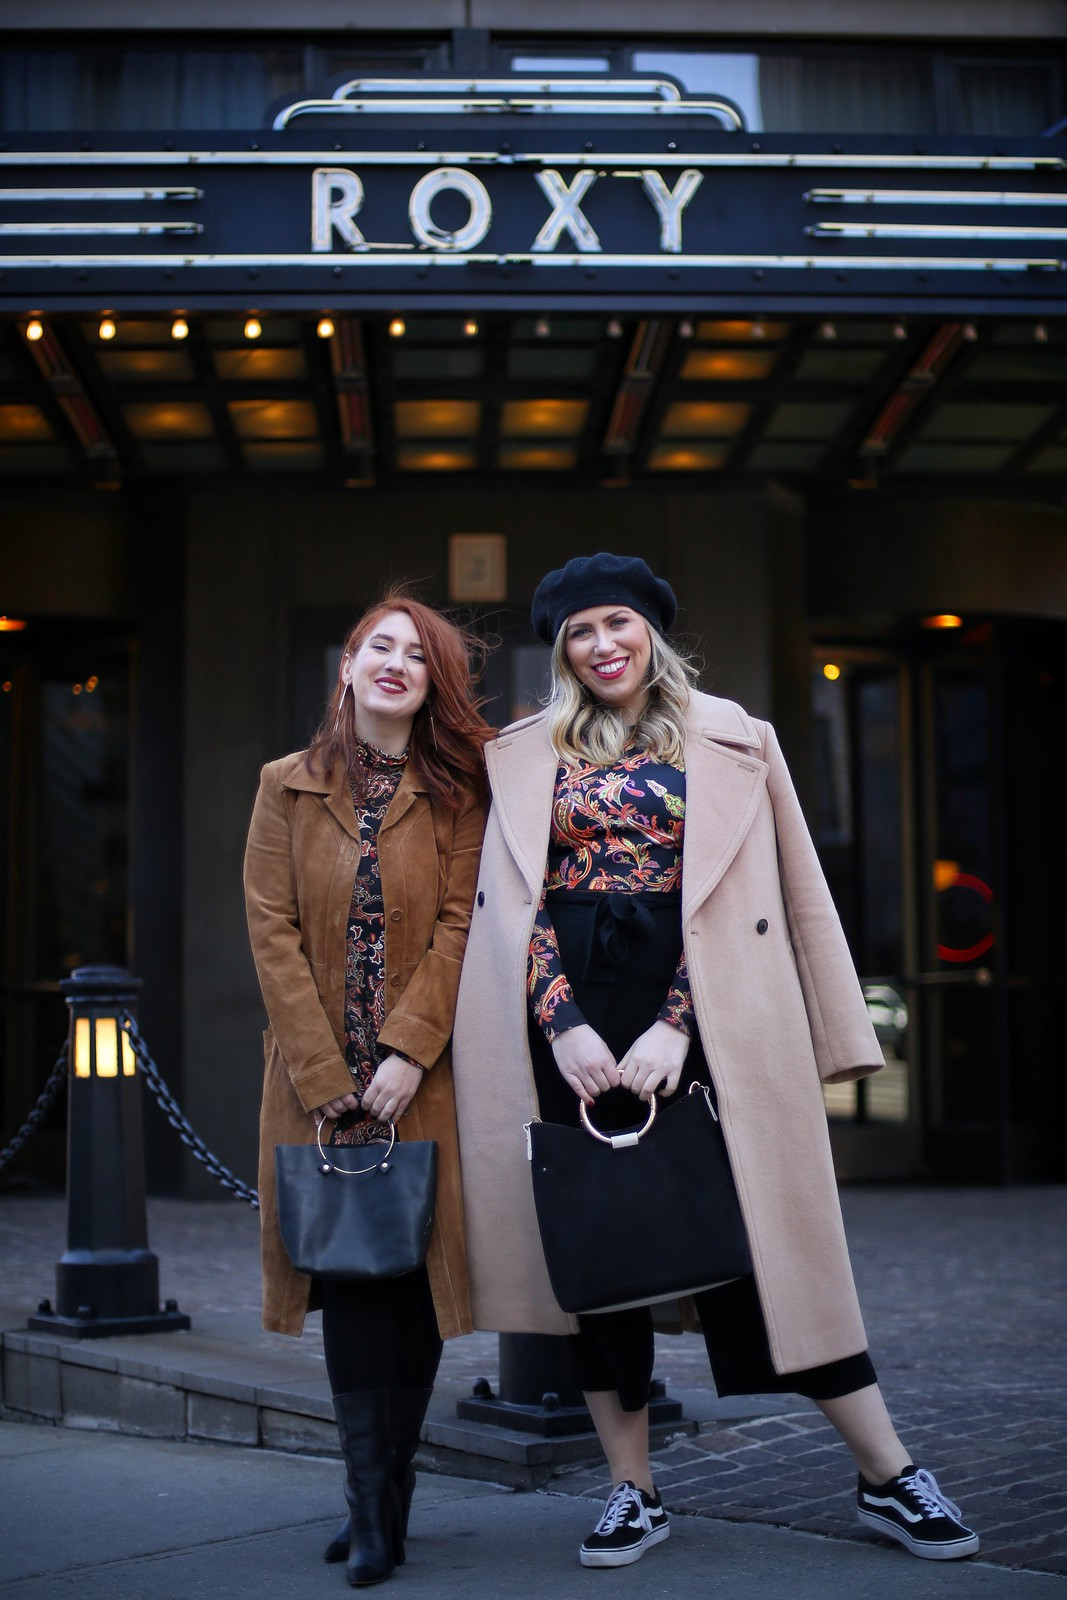 NYC Fashion Bloggers ASOS Paisley Print Winter Outfits Brown Coats Roxy Hotel Tribeca